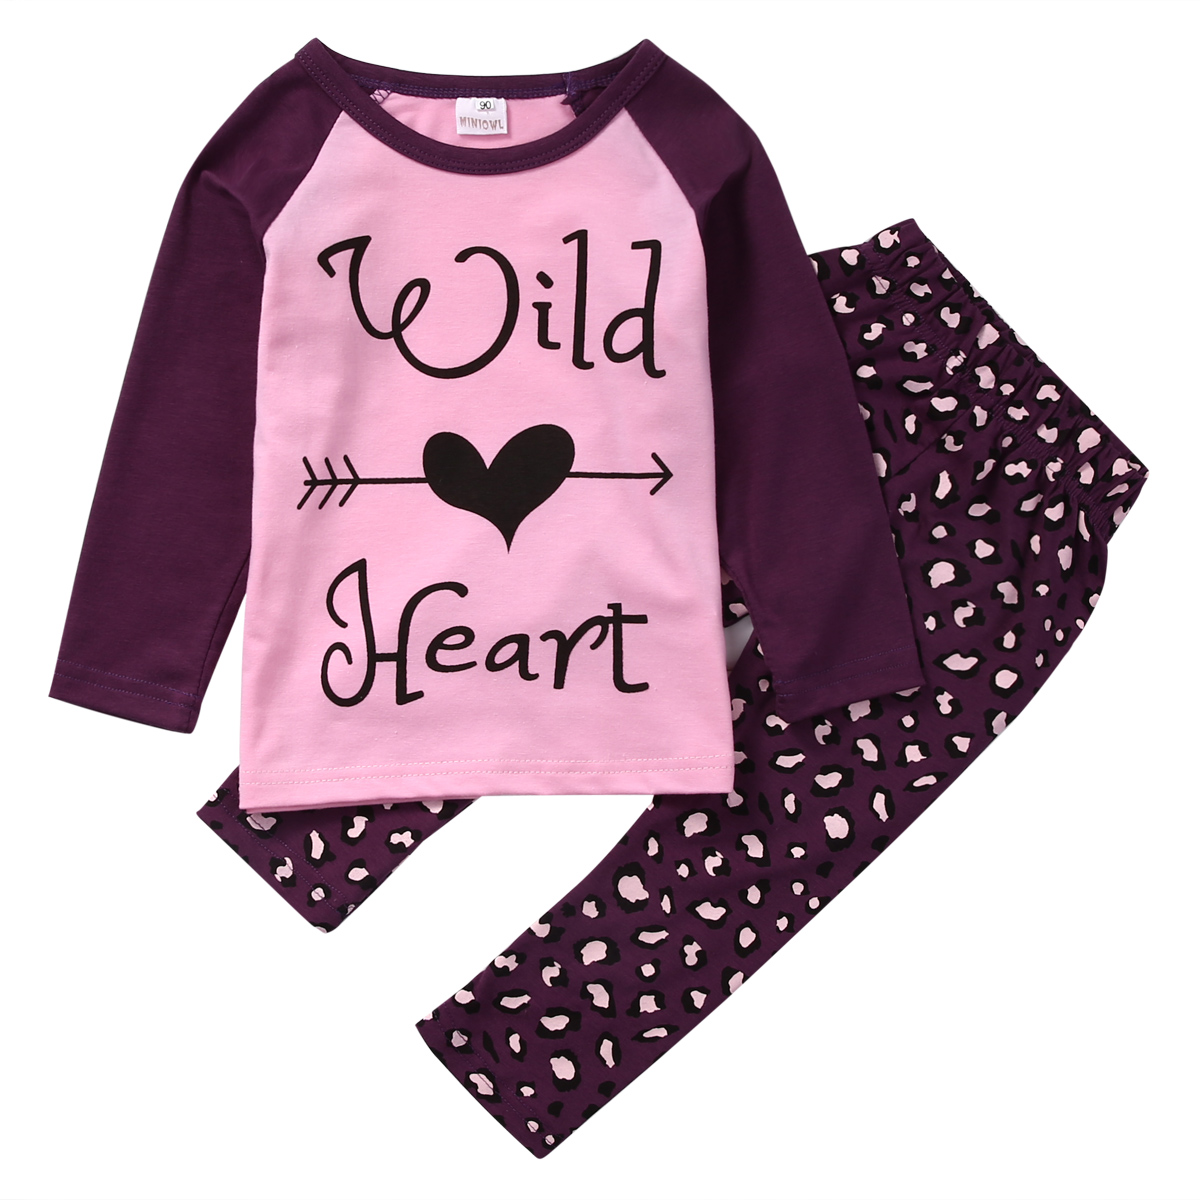 2PCS Set Toddler Kids Girls Clothes Wild Heart Long Sleeve T-shirt Tops Pant Outfit Cute Girl Children Suit 1-6Y 2017 cute kids girl clothing set off shoulder lace white t shirt tops denim pant jeans 2pcs children clothes 2 7y